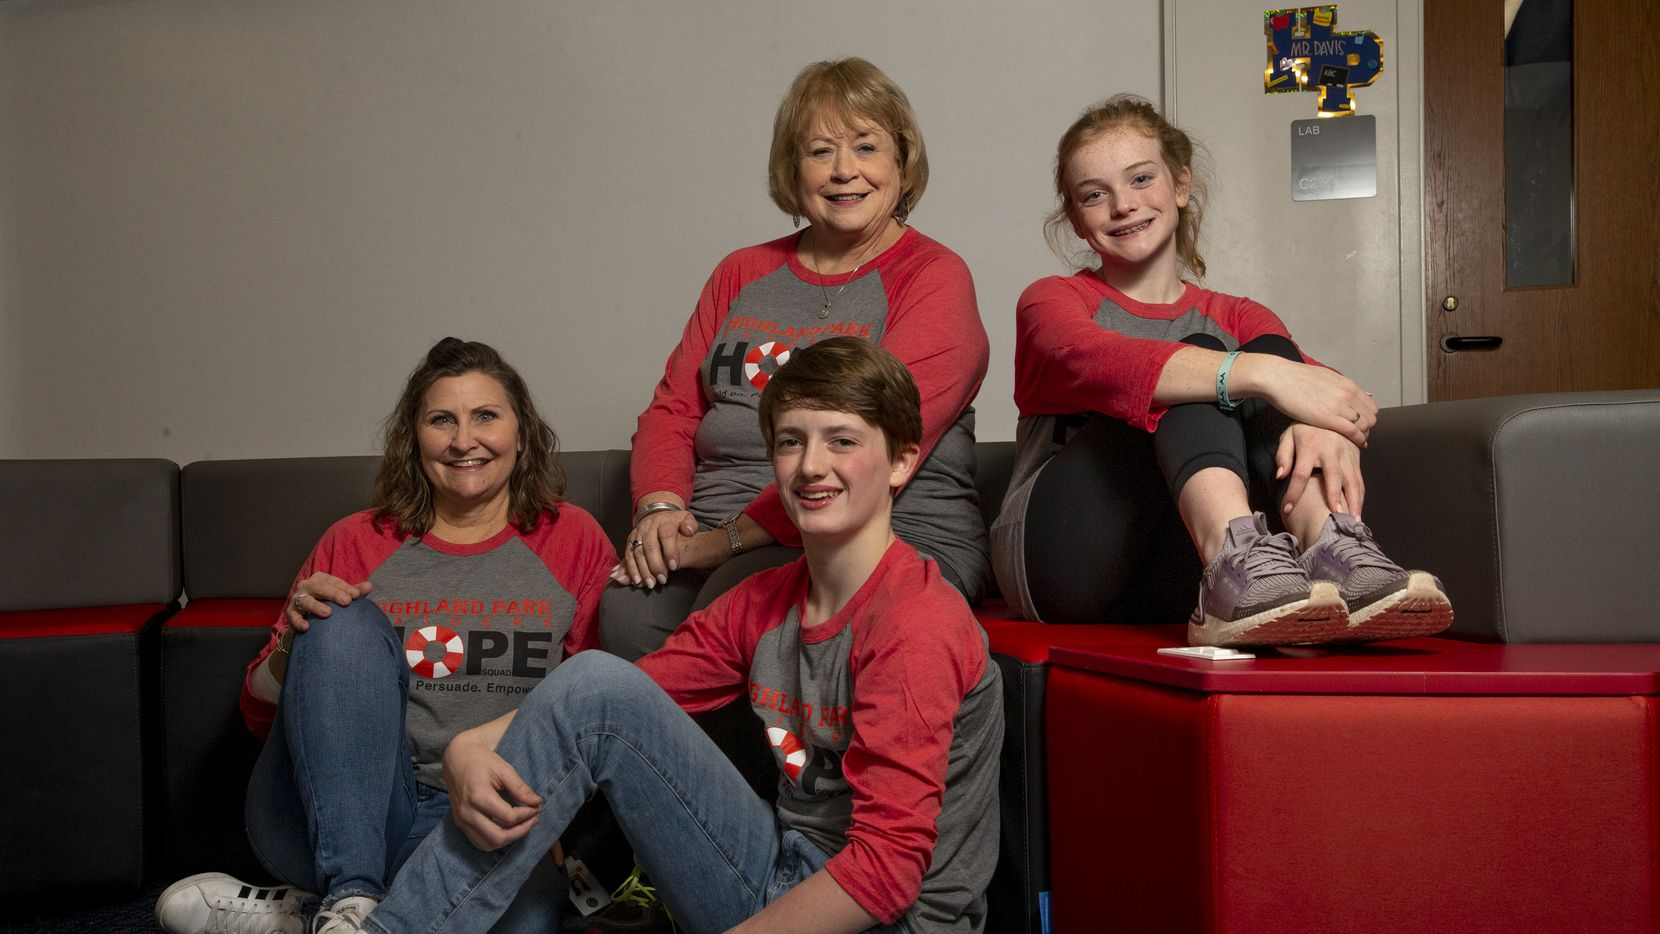 Hope Squad student and staff members at Highland Park Middle School include seventh-grade counselor Christen Armer, eighth-grade counselor Margaret Arnold, eighth-grader Cole Farley, 14, and seventh-grader Anna Butler, 13.